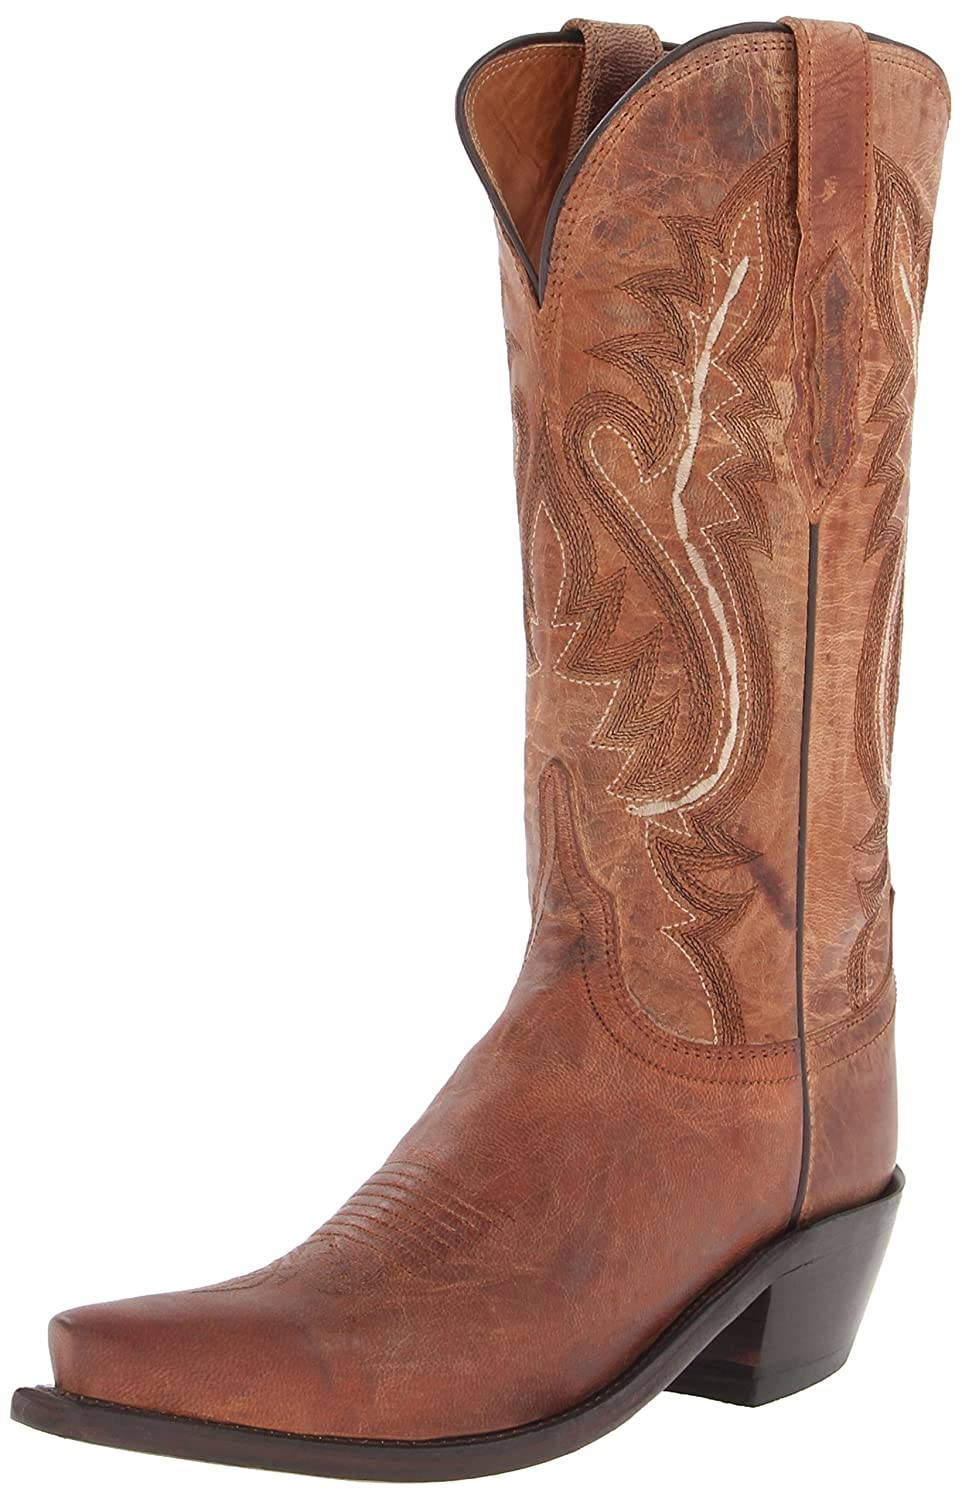 1f43fed00df Lucchese Bootmaker Women's Cassidy-tan Mad Dog Goat Riding Boot